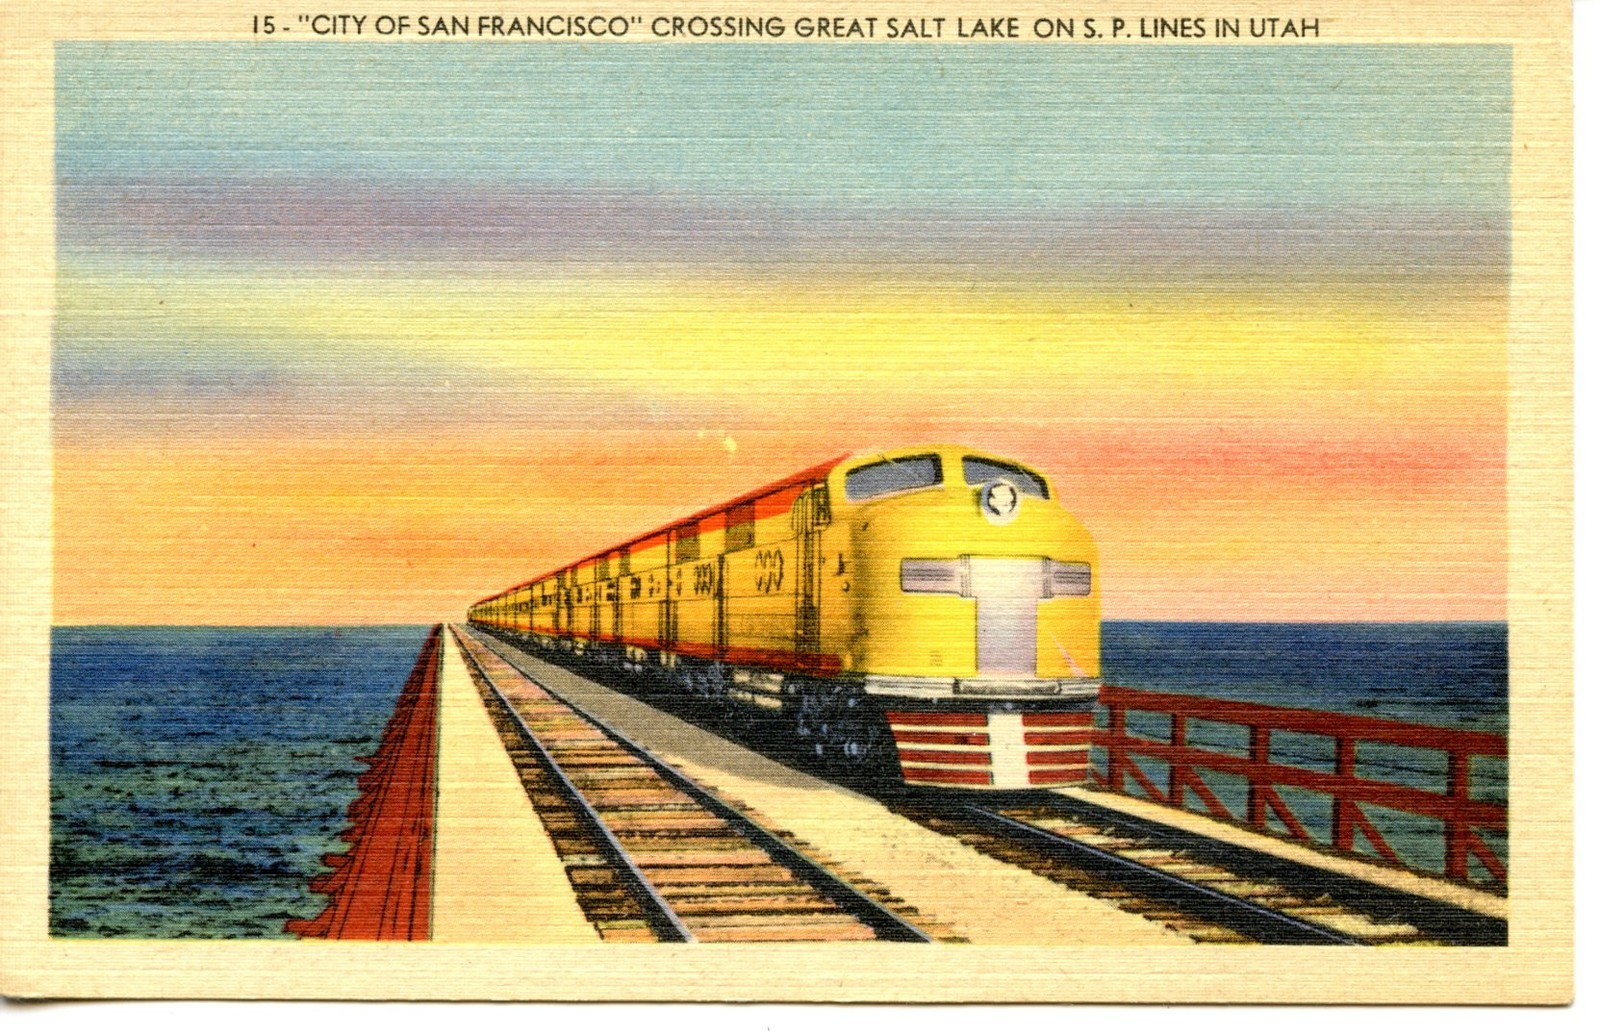 City of San Francisco postcard